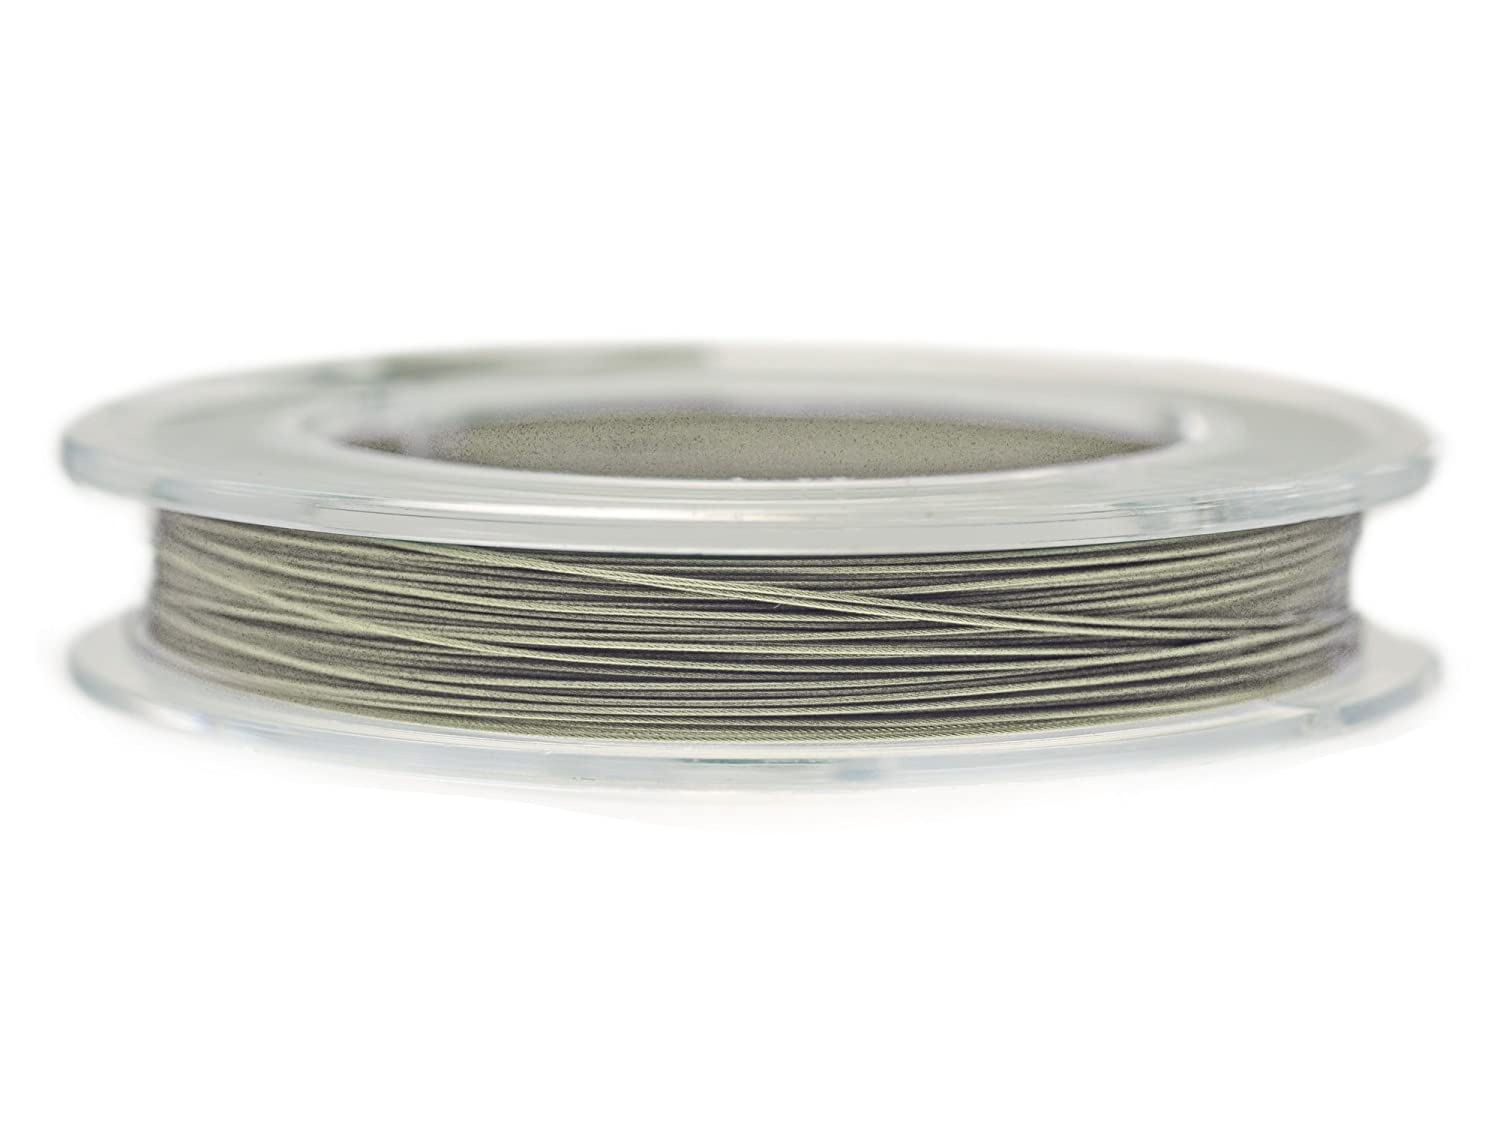 Artistic Wire 1.0 mm Stainless Steel Wire (for Necklace, Bracelets, Earrings etc.), Nylon Coated, 100 M Roll Silver Creative Beadswire